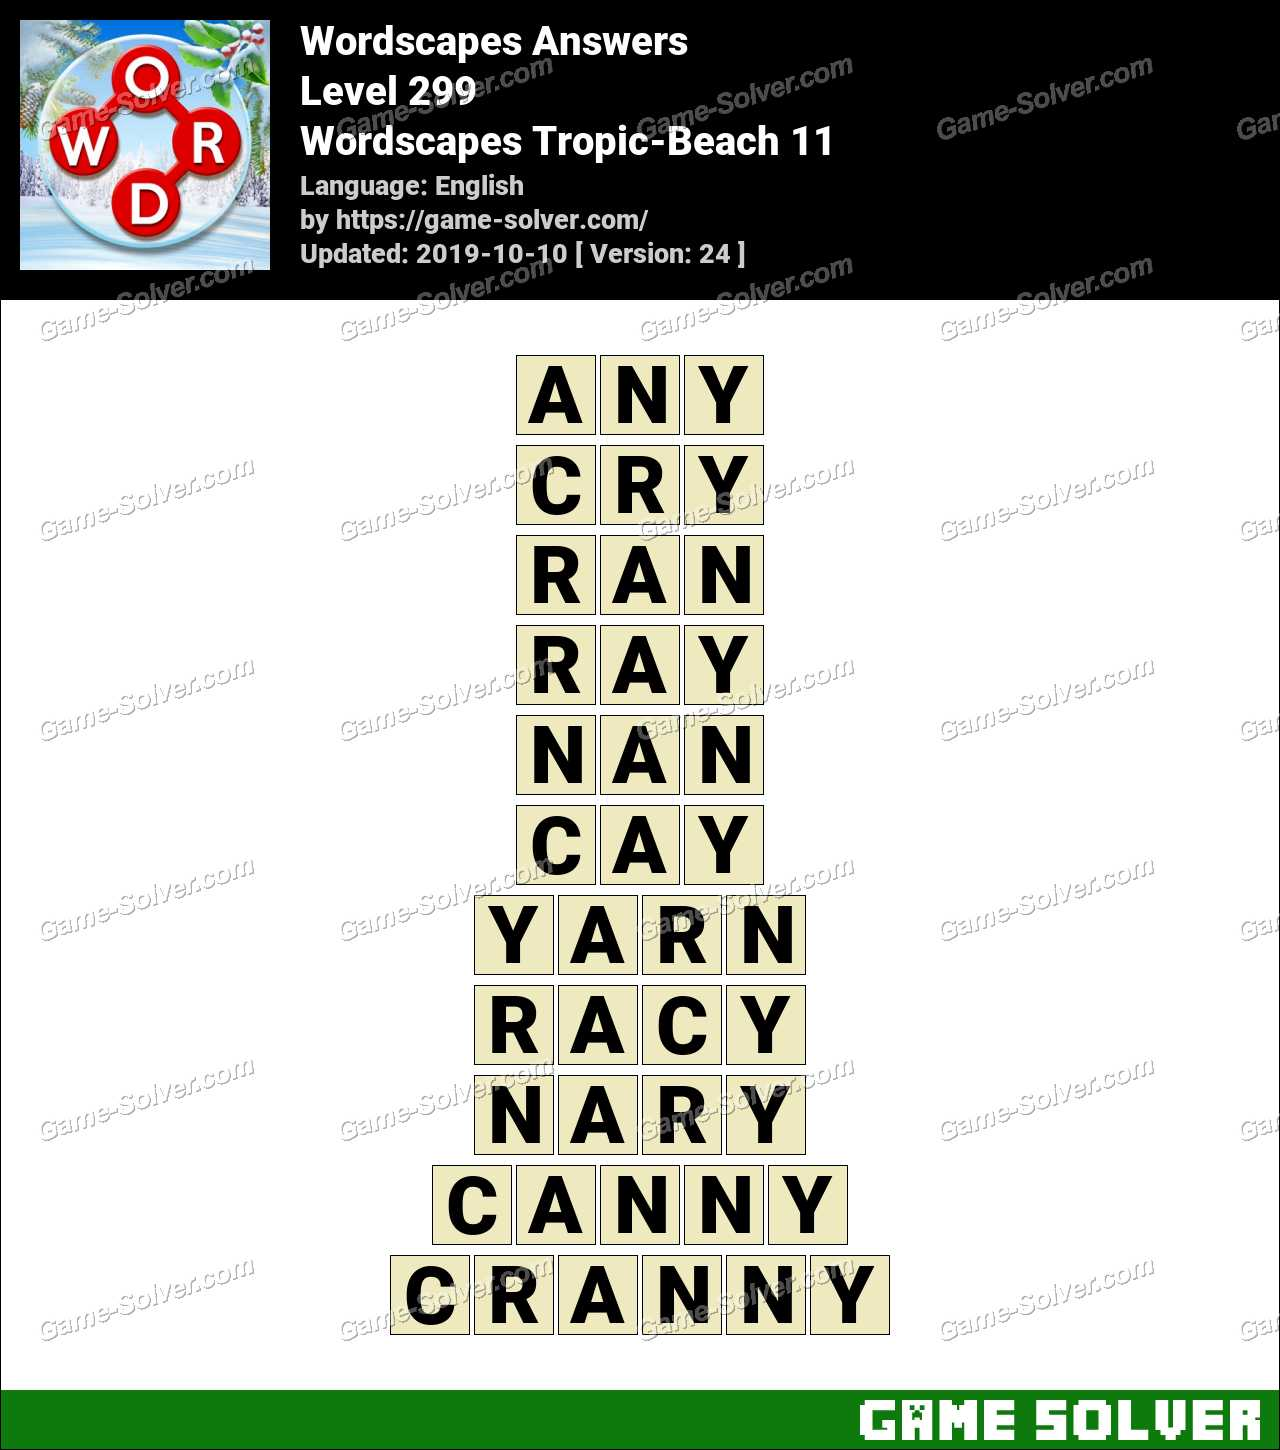 Wordscapes Tropic-Beach 11 Answers